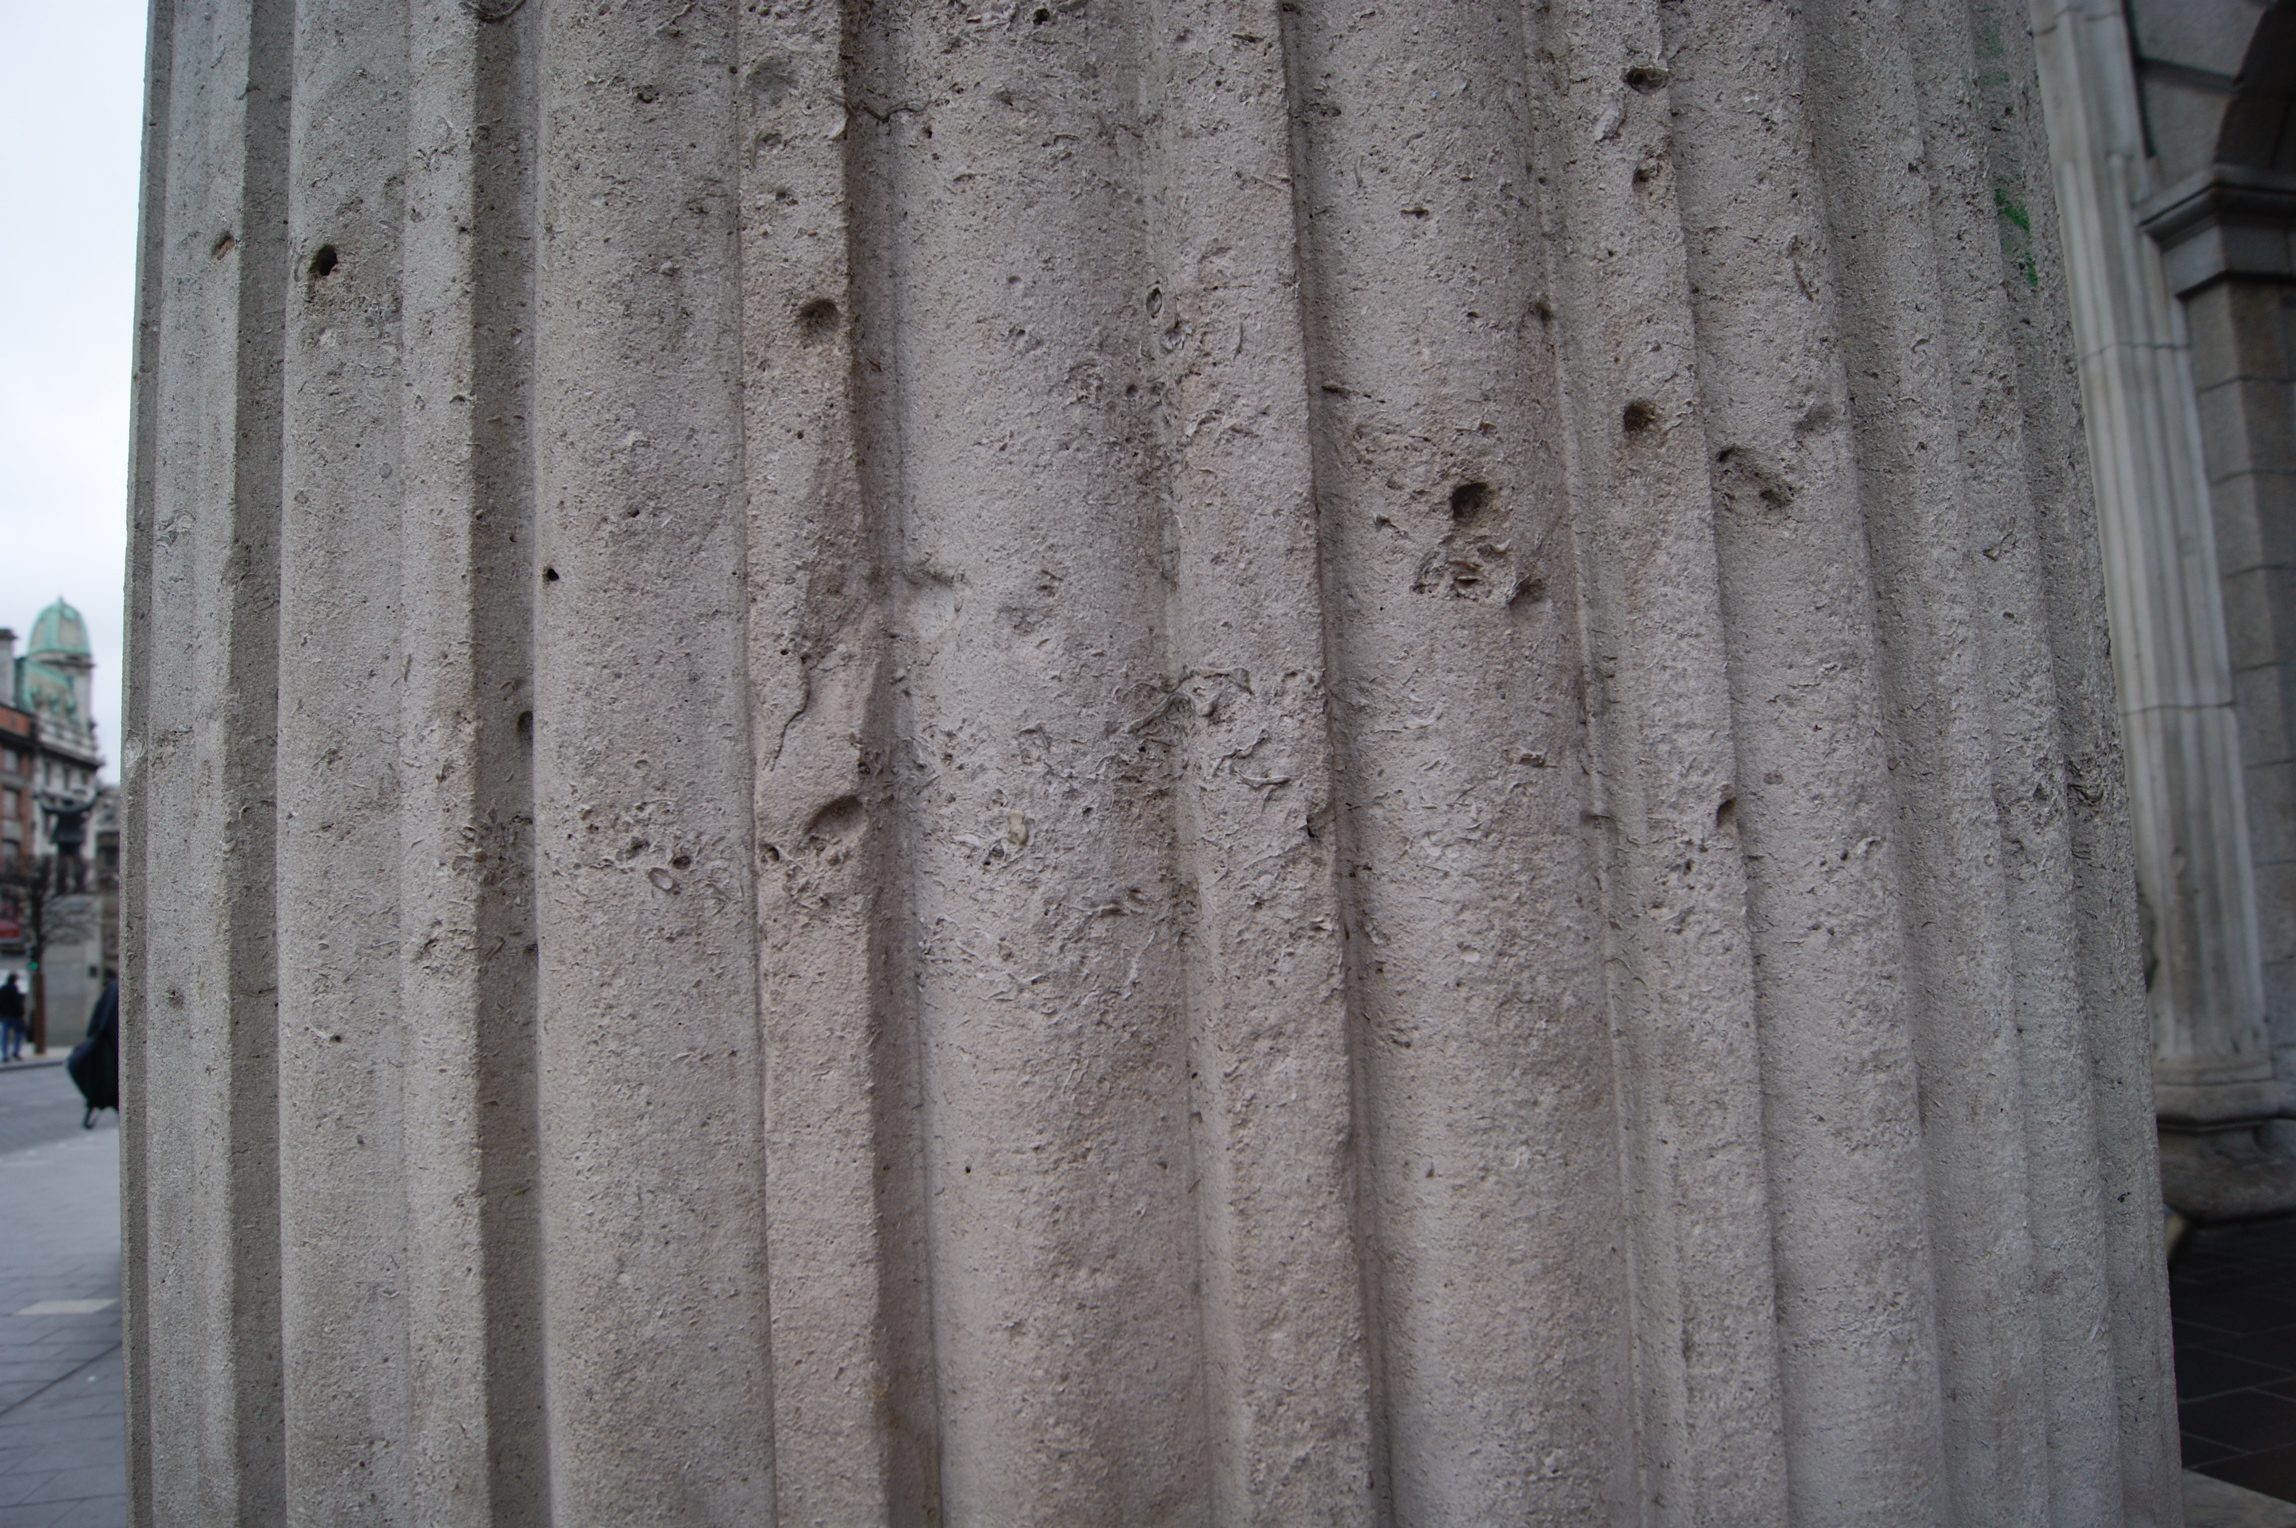 Bullet holes in the post office